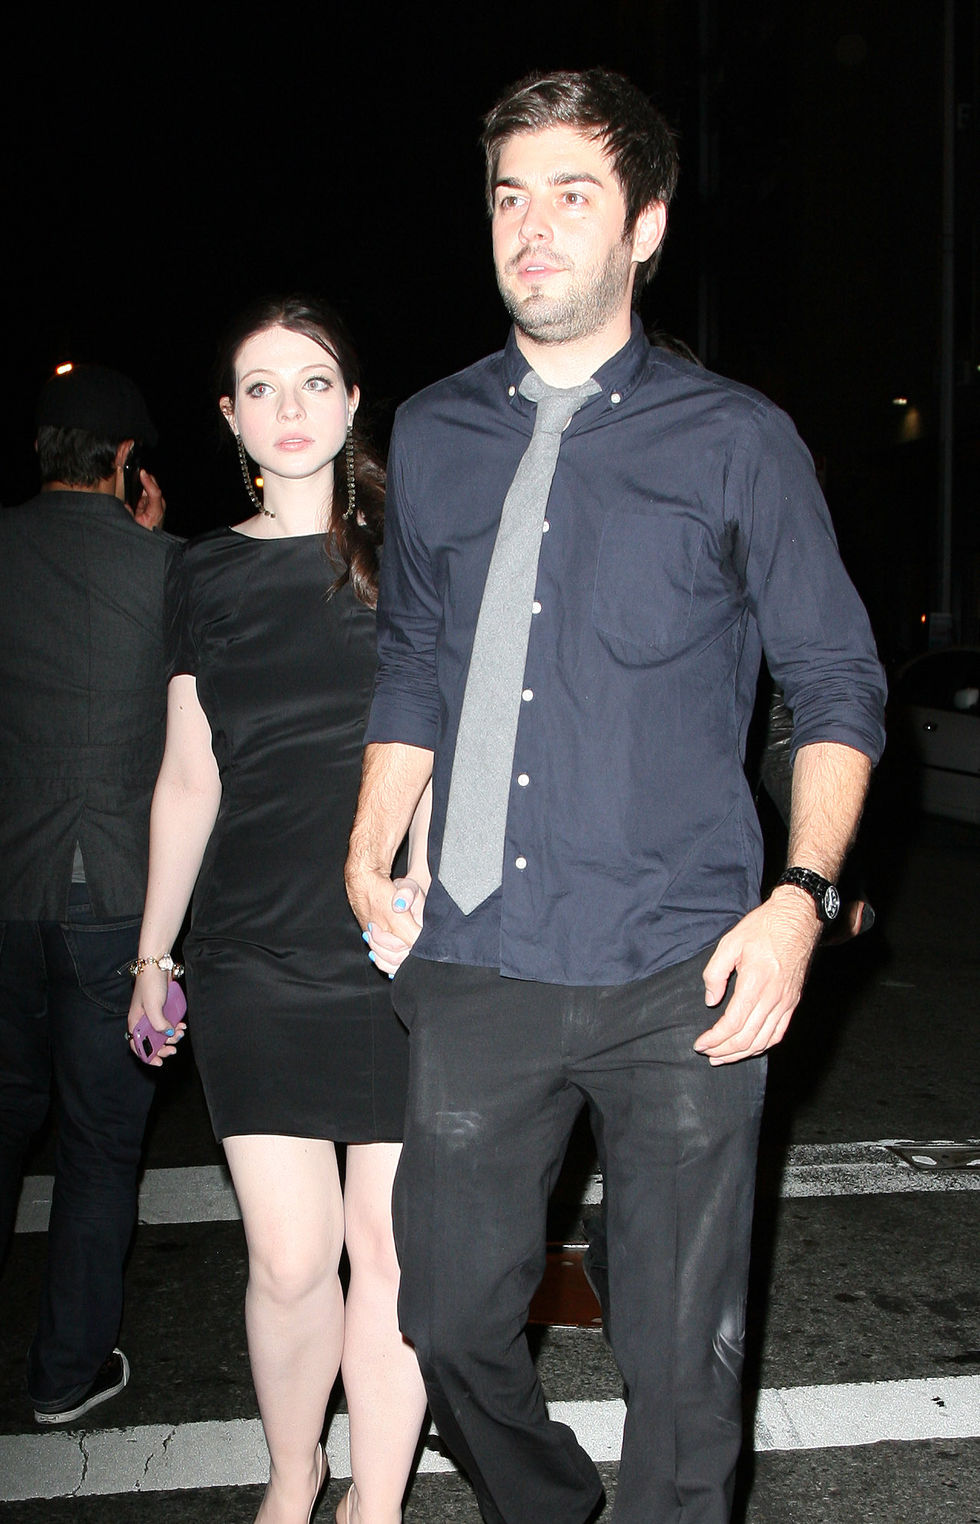 michelle-trachtenberg-at-one-oak-club-in-new-york-01